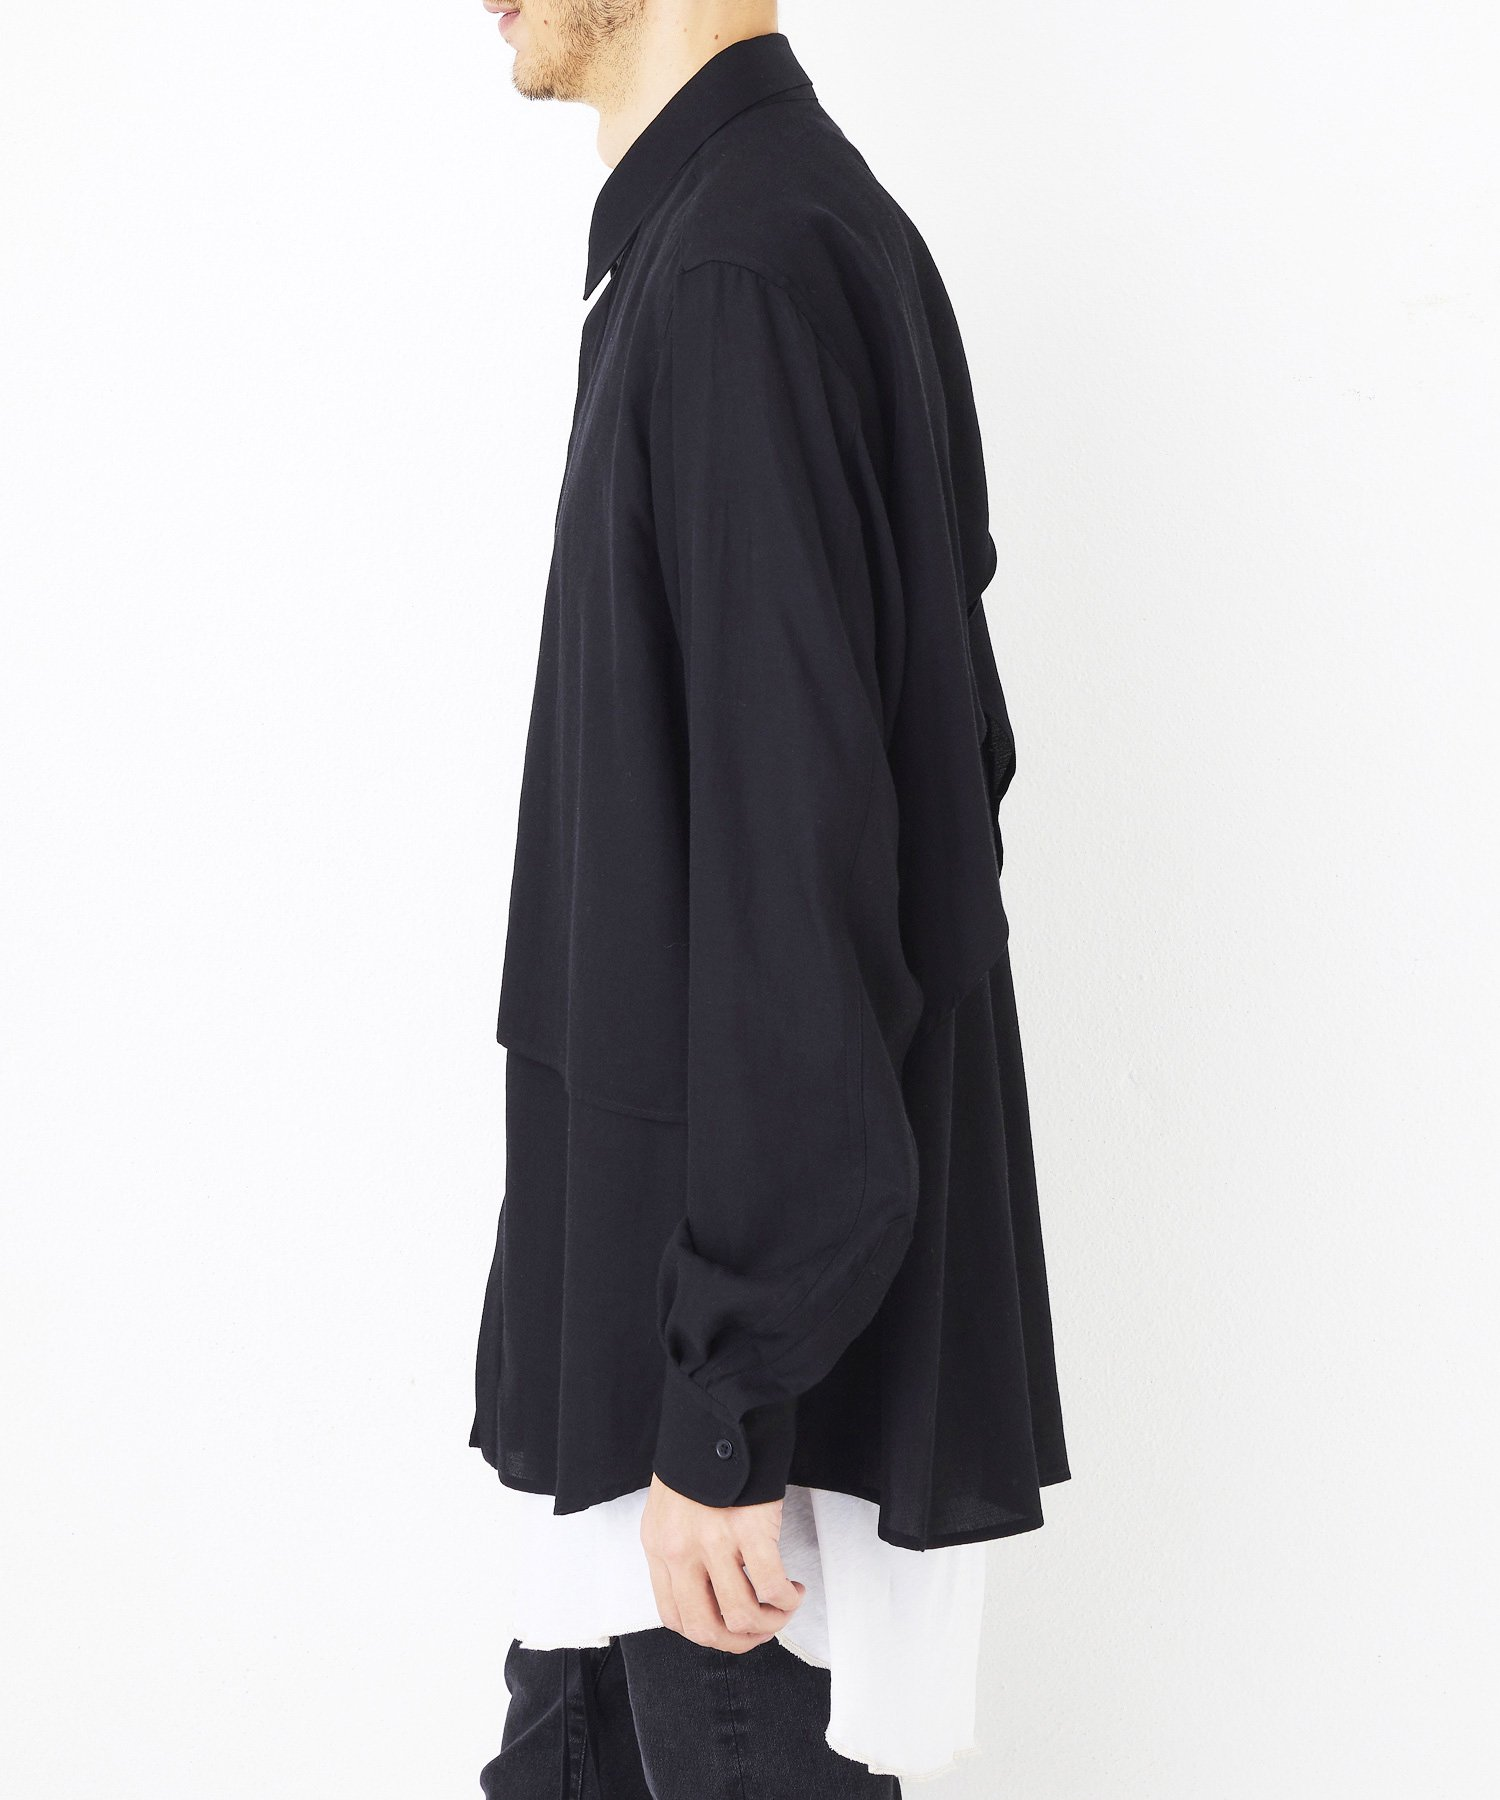 LAYERED SHT【Black】